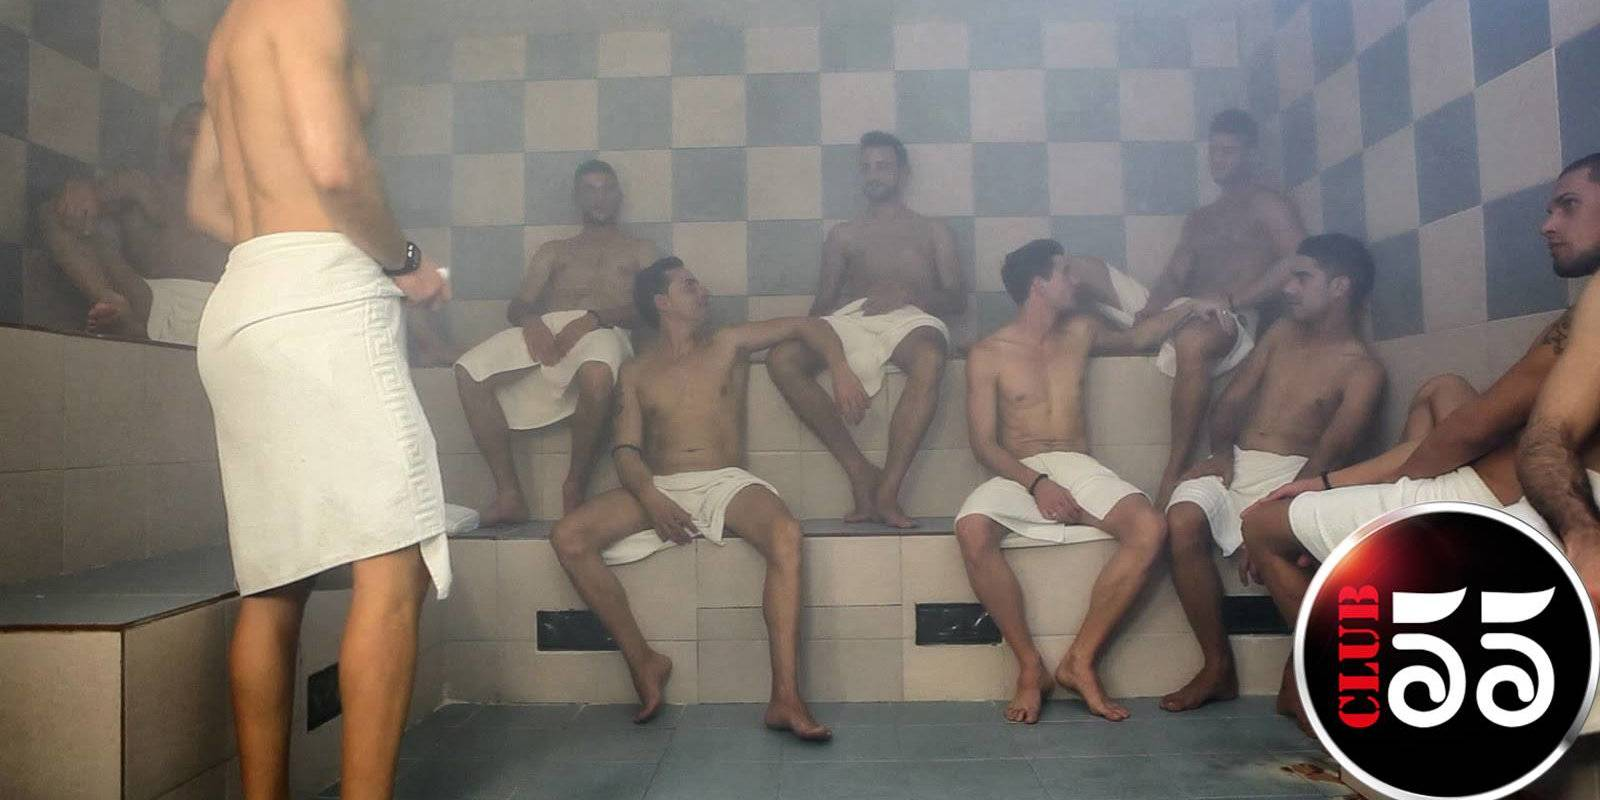 Make new gay friends at Medellin's Club 55 gay sauna.